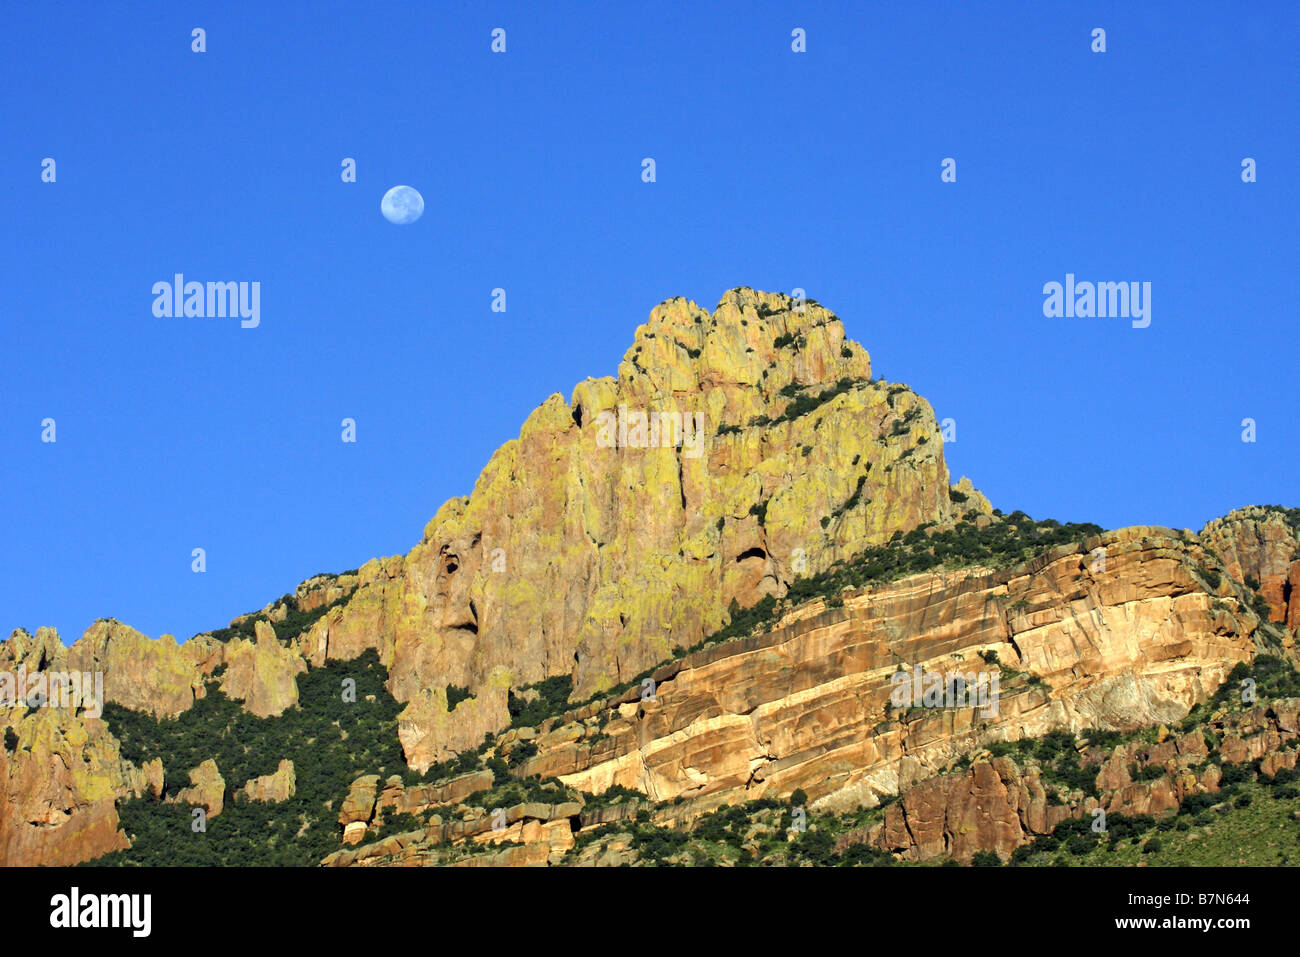 Chiricahua Mountains ARIZONA United States 19 August Moon over lichen covered rocky peak - Stock Image